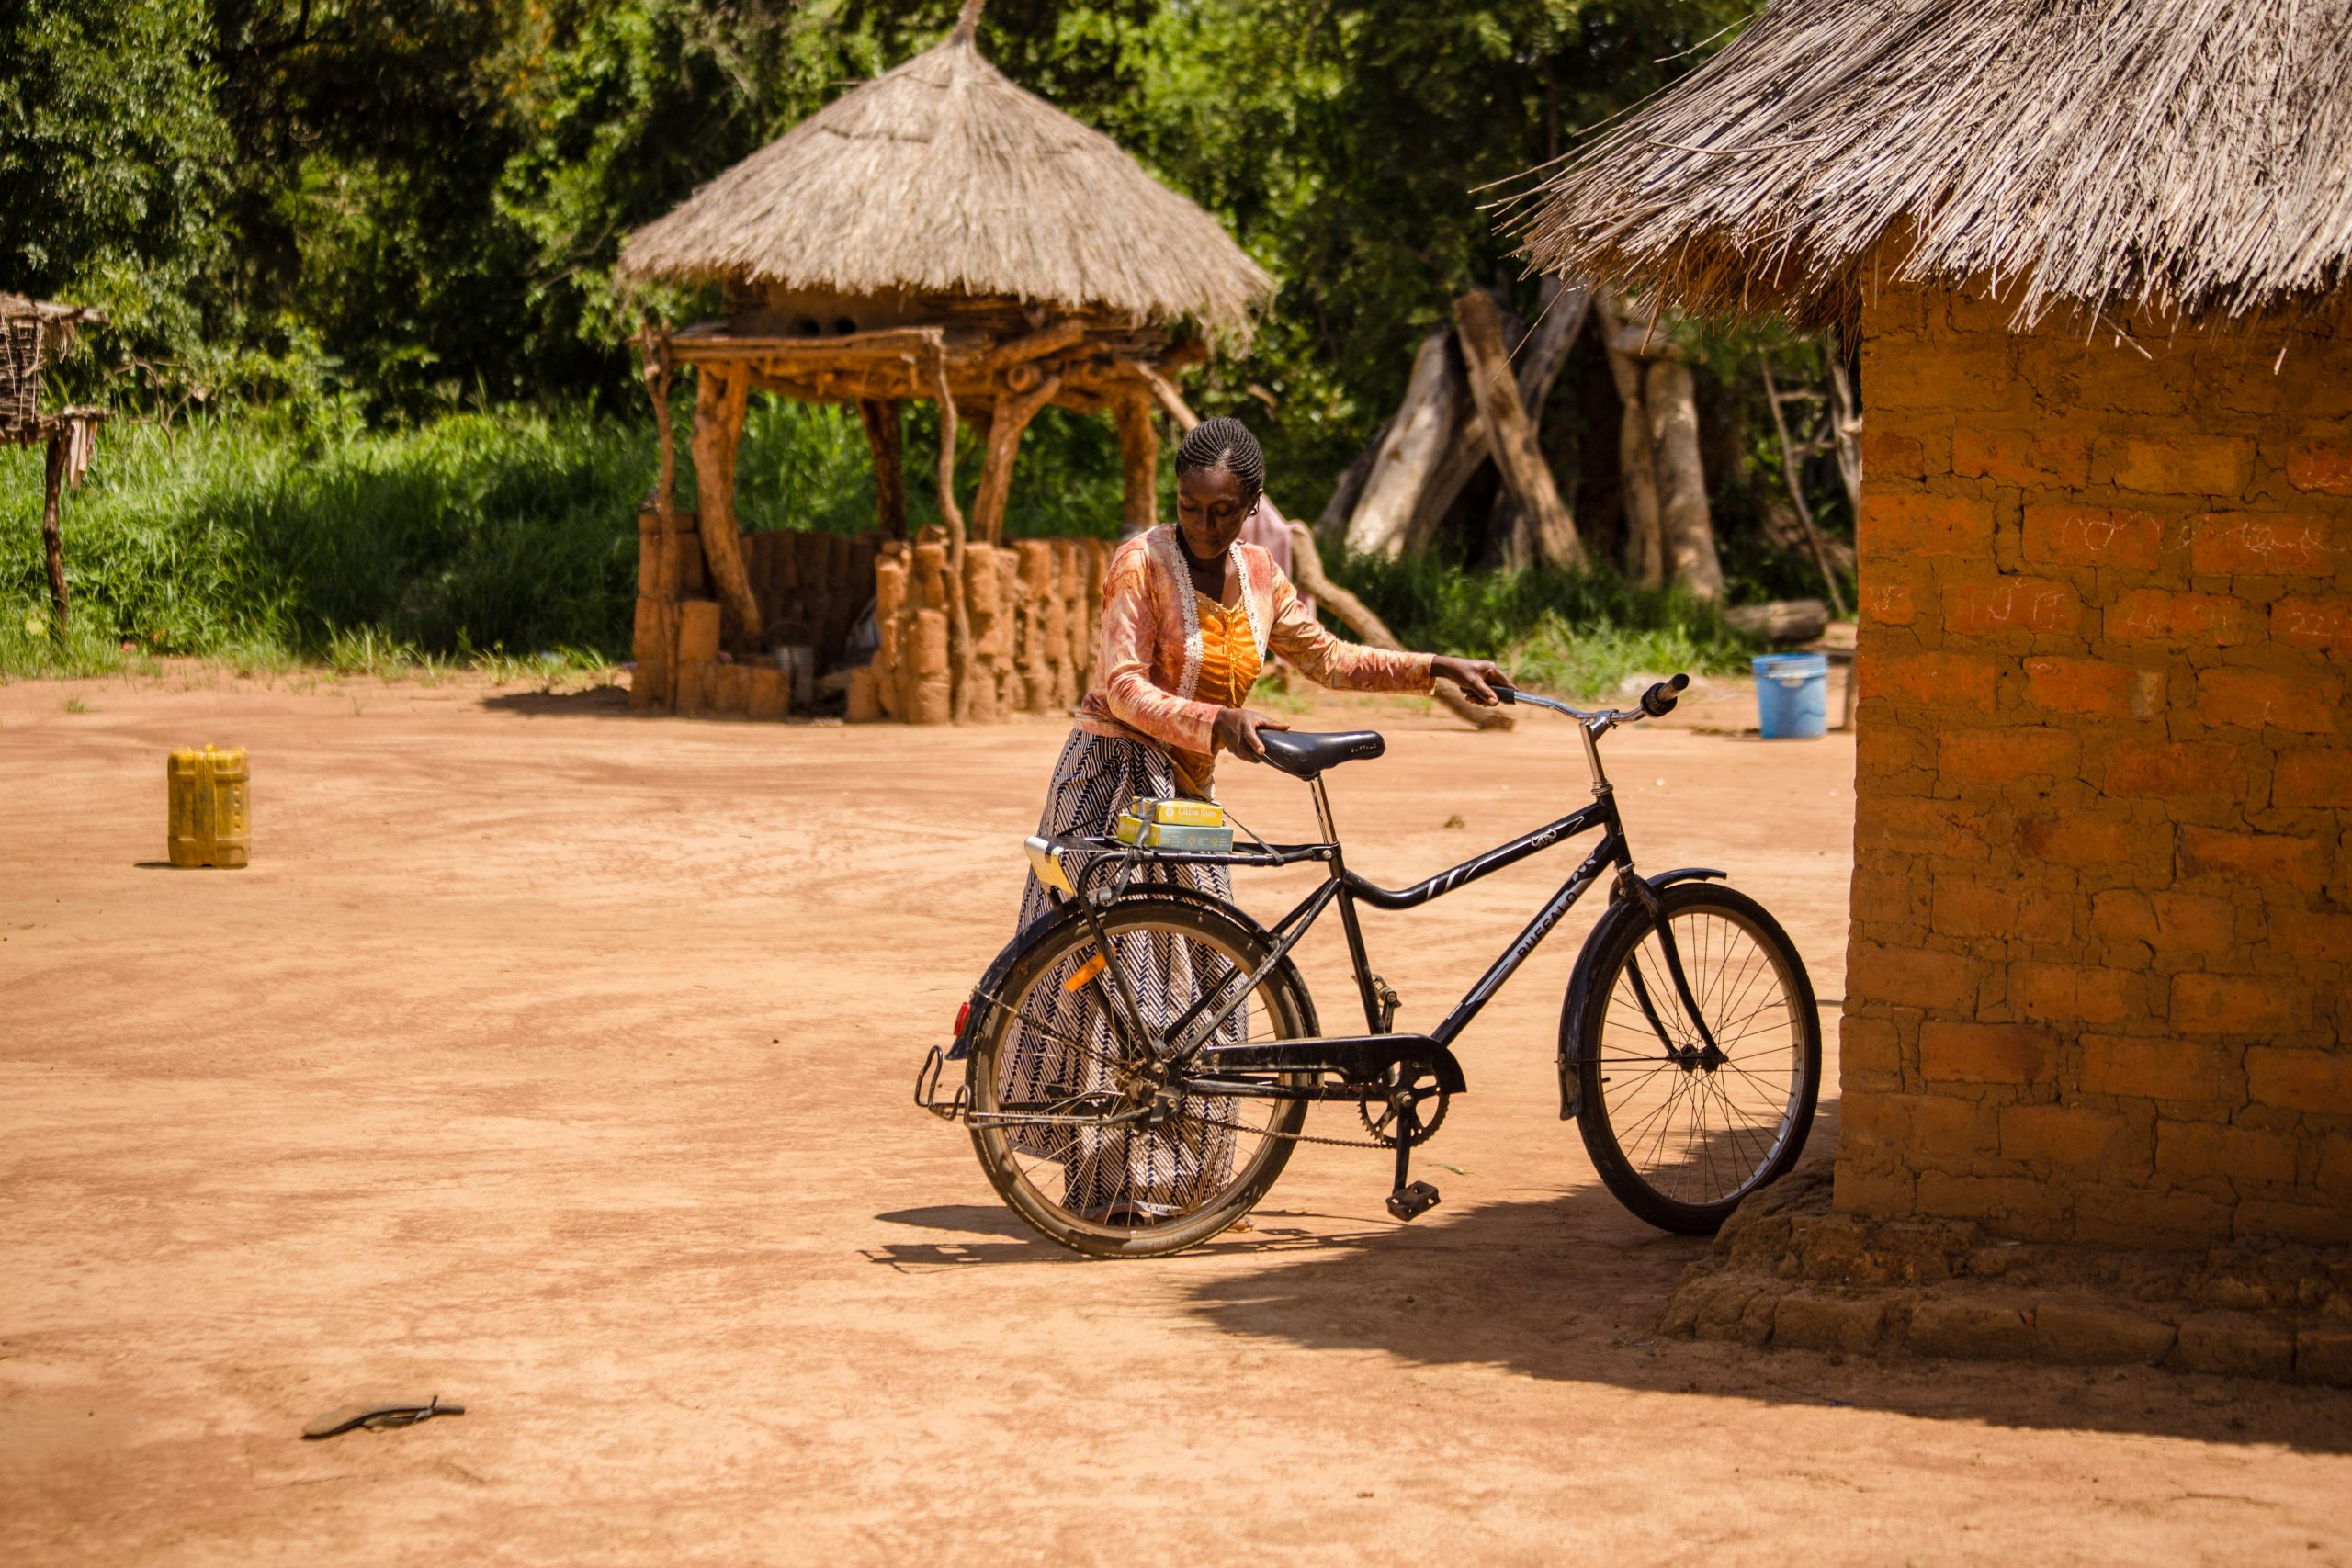 A woman with a bike distributing a Little Sun solar lamp for food security purposes